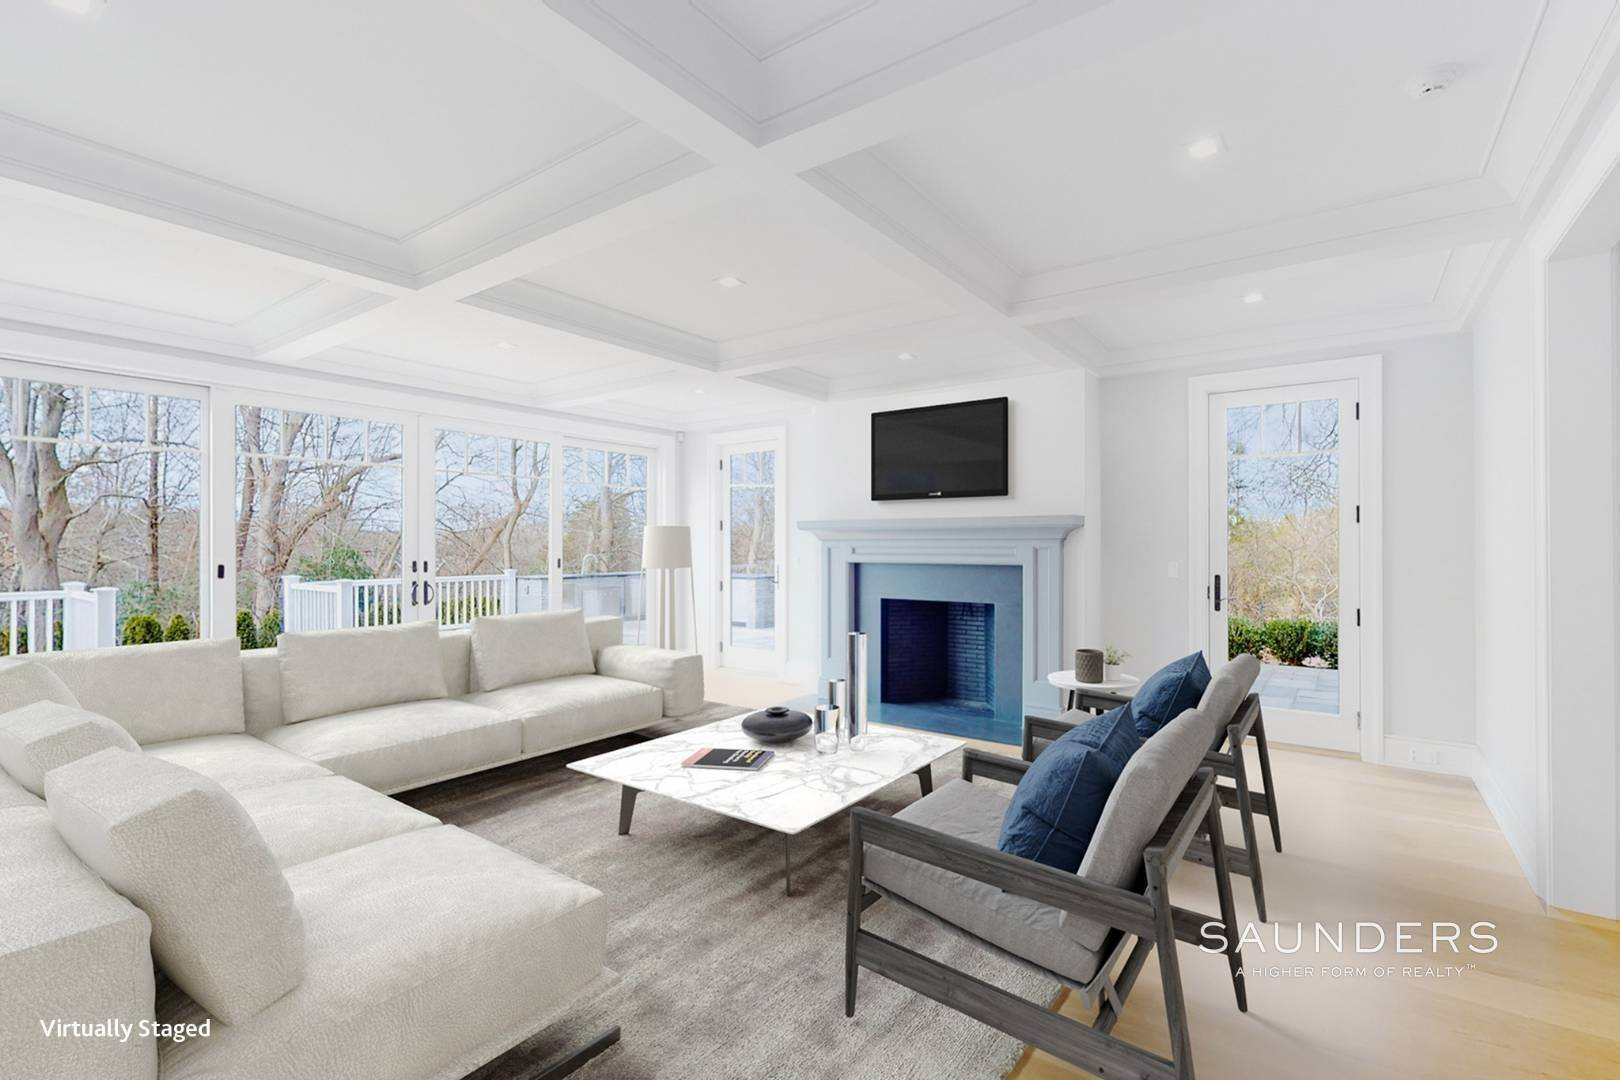 4. Single Family Homes for Sale at Luxury New Construction By The Bay In Amagansett 57 Broadview Road, Amagansett, East Hampton Town, NY 11930